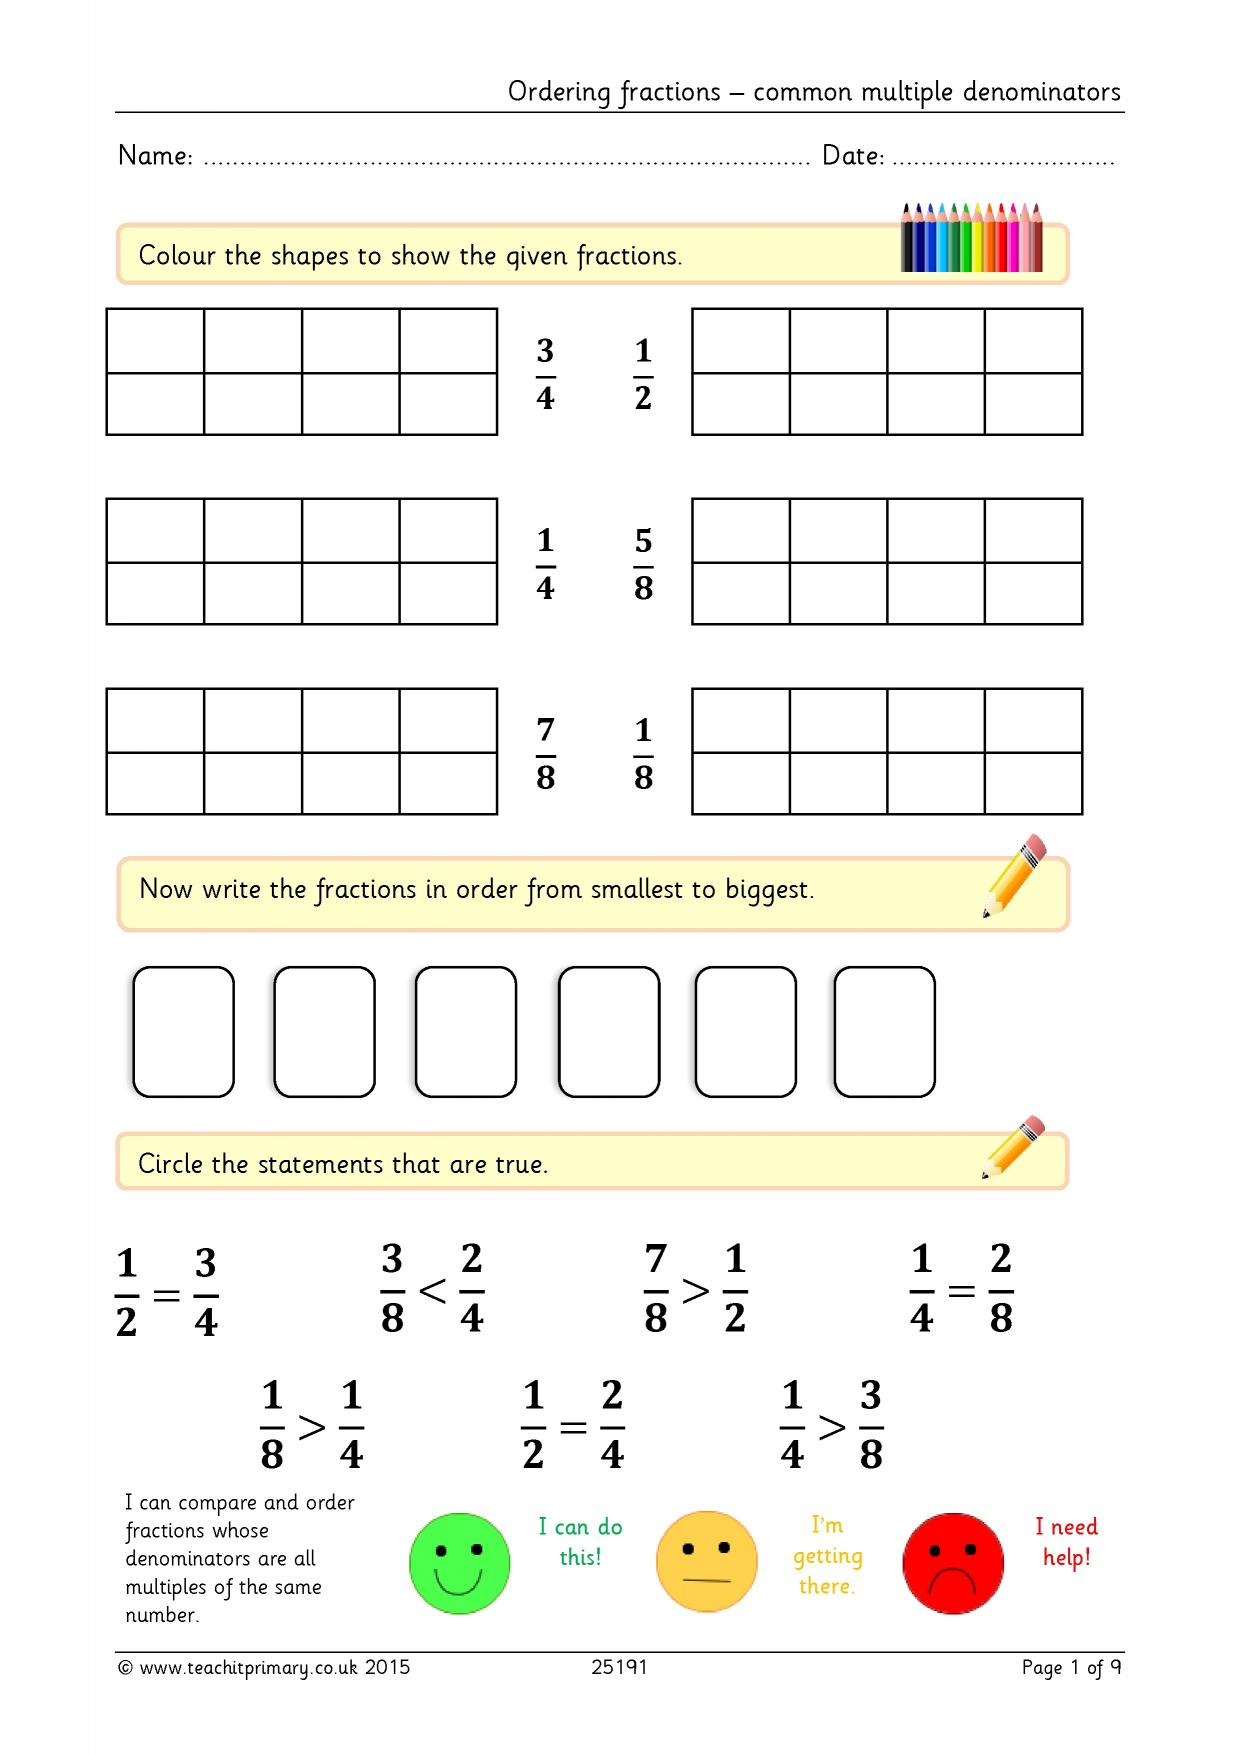 Worksheets Comparing And Ordering Fractions Worksheets 100 comparing and ordering fractions worksheets math free downloadable worksheets